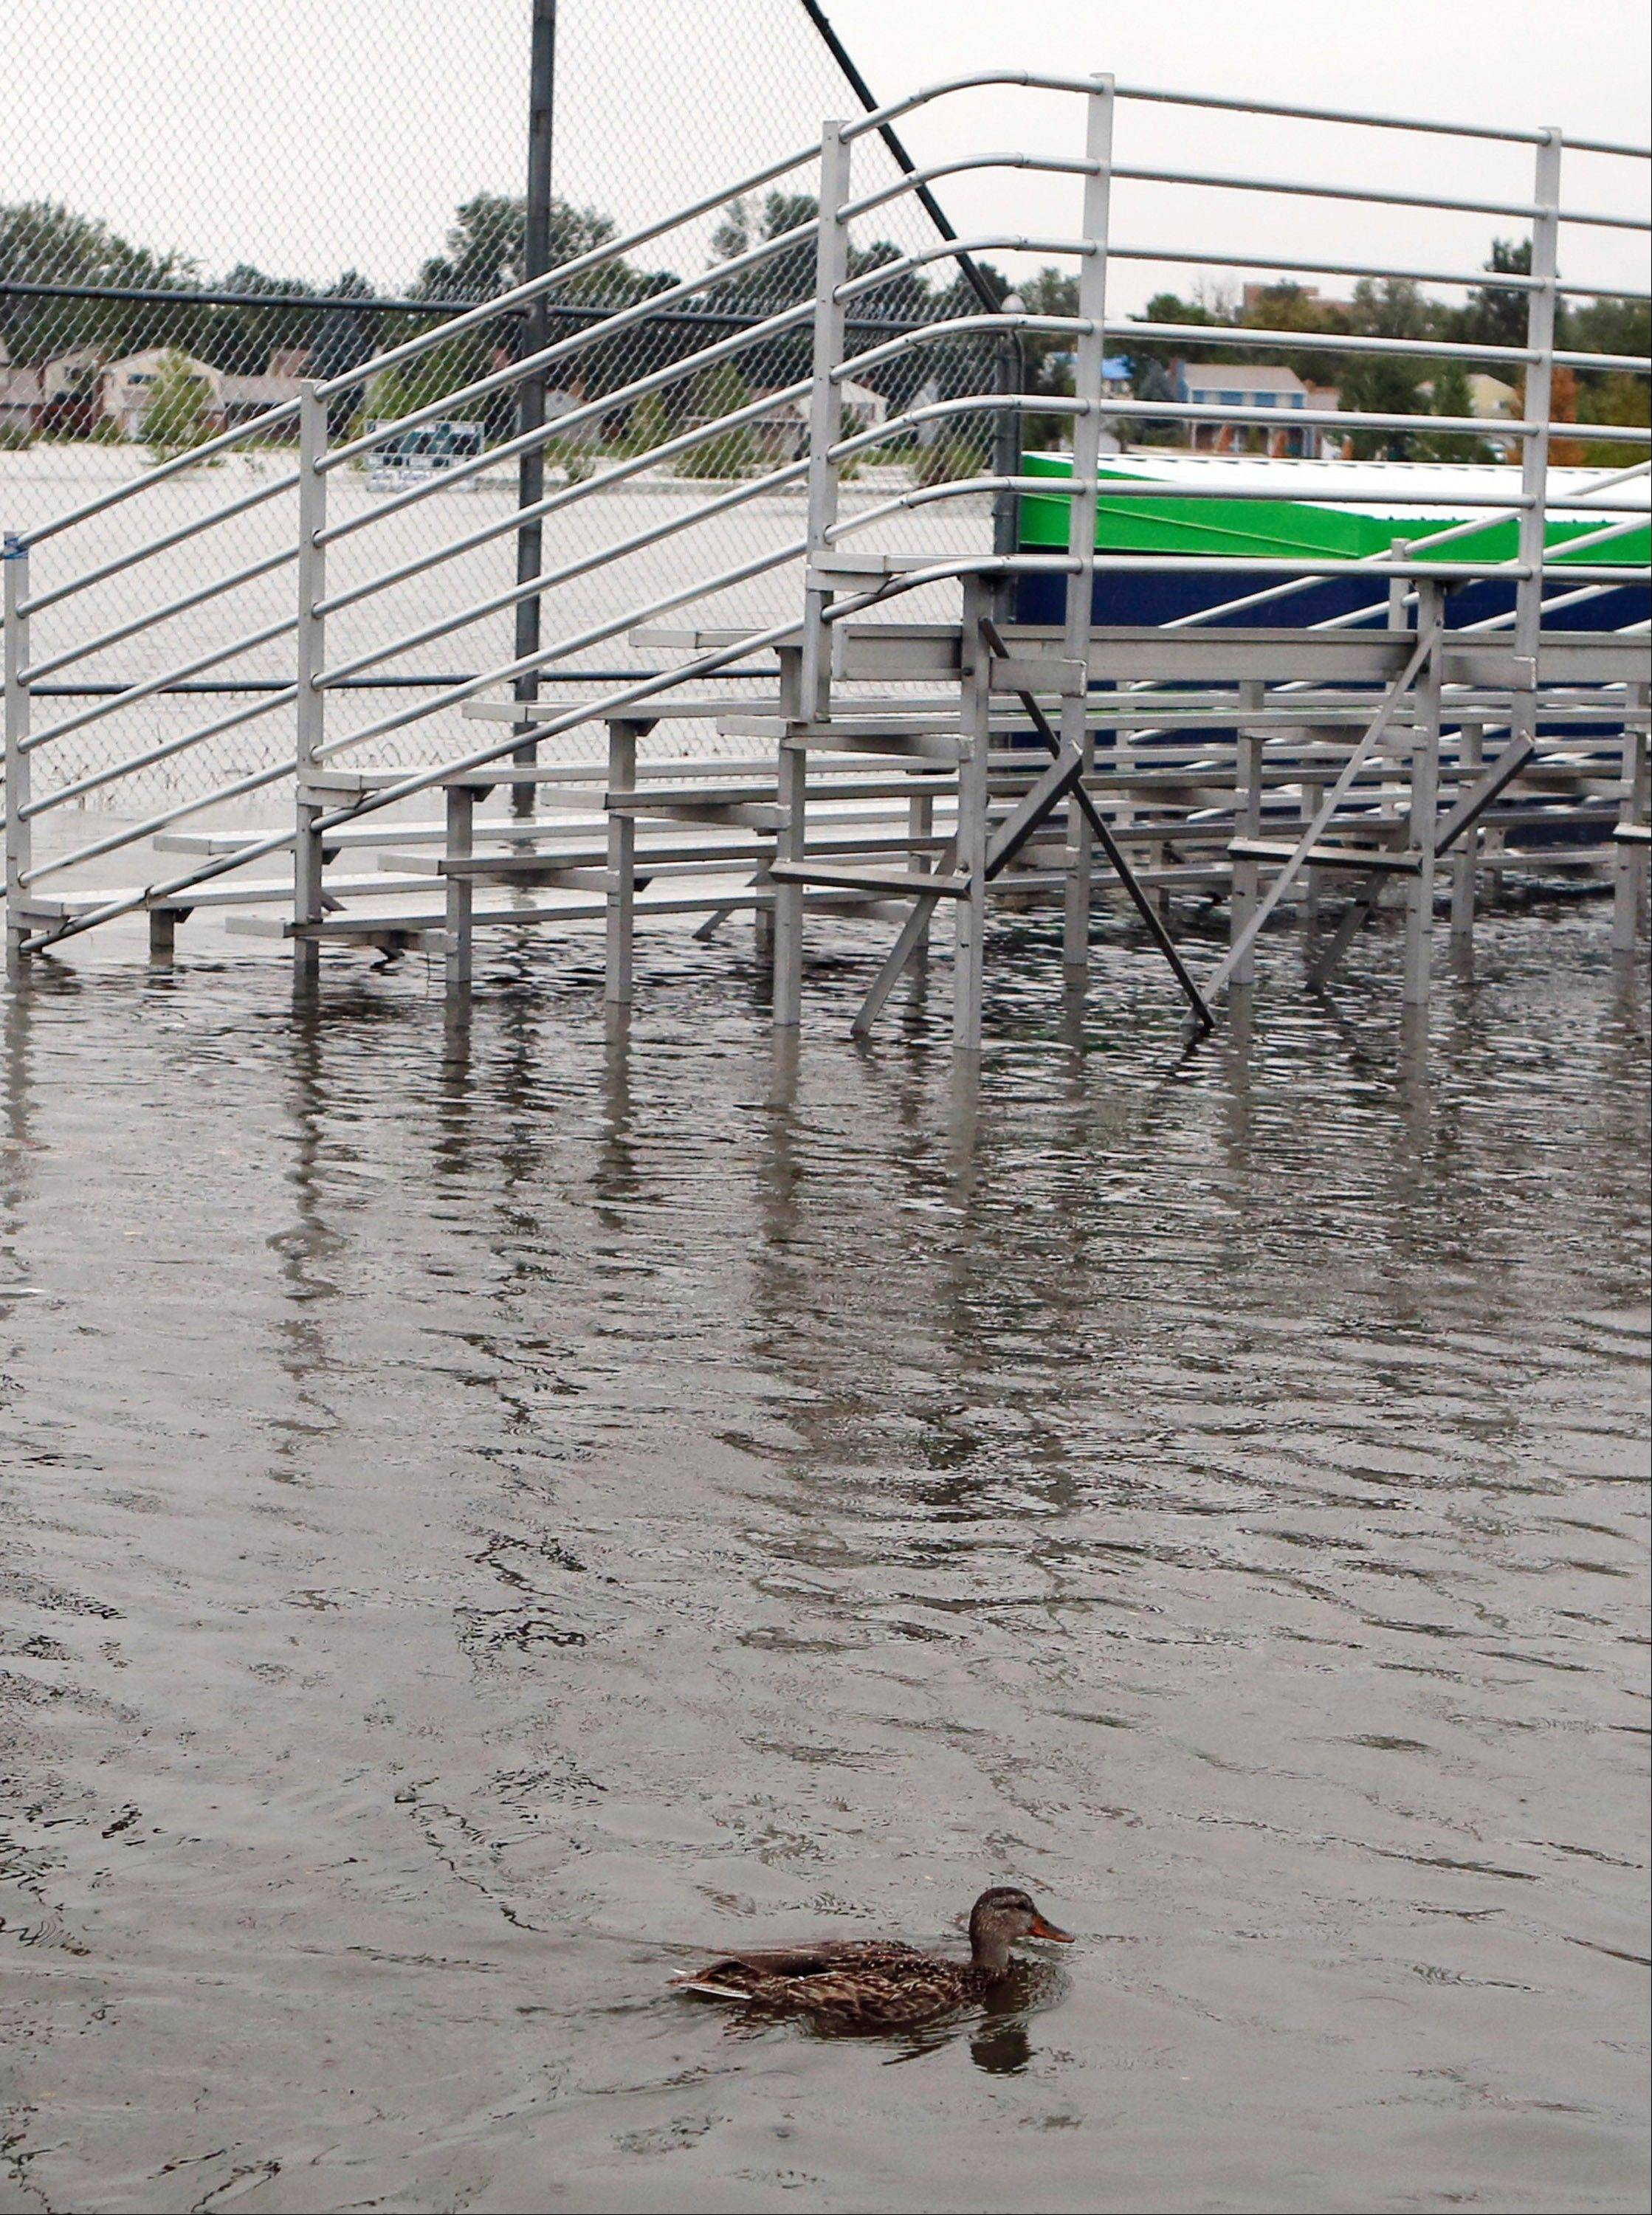 A duck swims near bleachers at Utah Park on Thursday, Sept. 12, 2013, in Aurora, Colo. The park was under water Thursday due to flooding. Flash flooding in Colorado has cut off access to towns, closed the University of Colorado in Boulder and left at least three people dead.